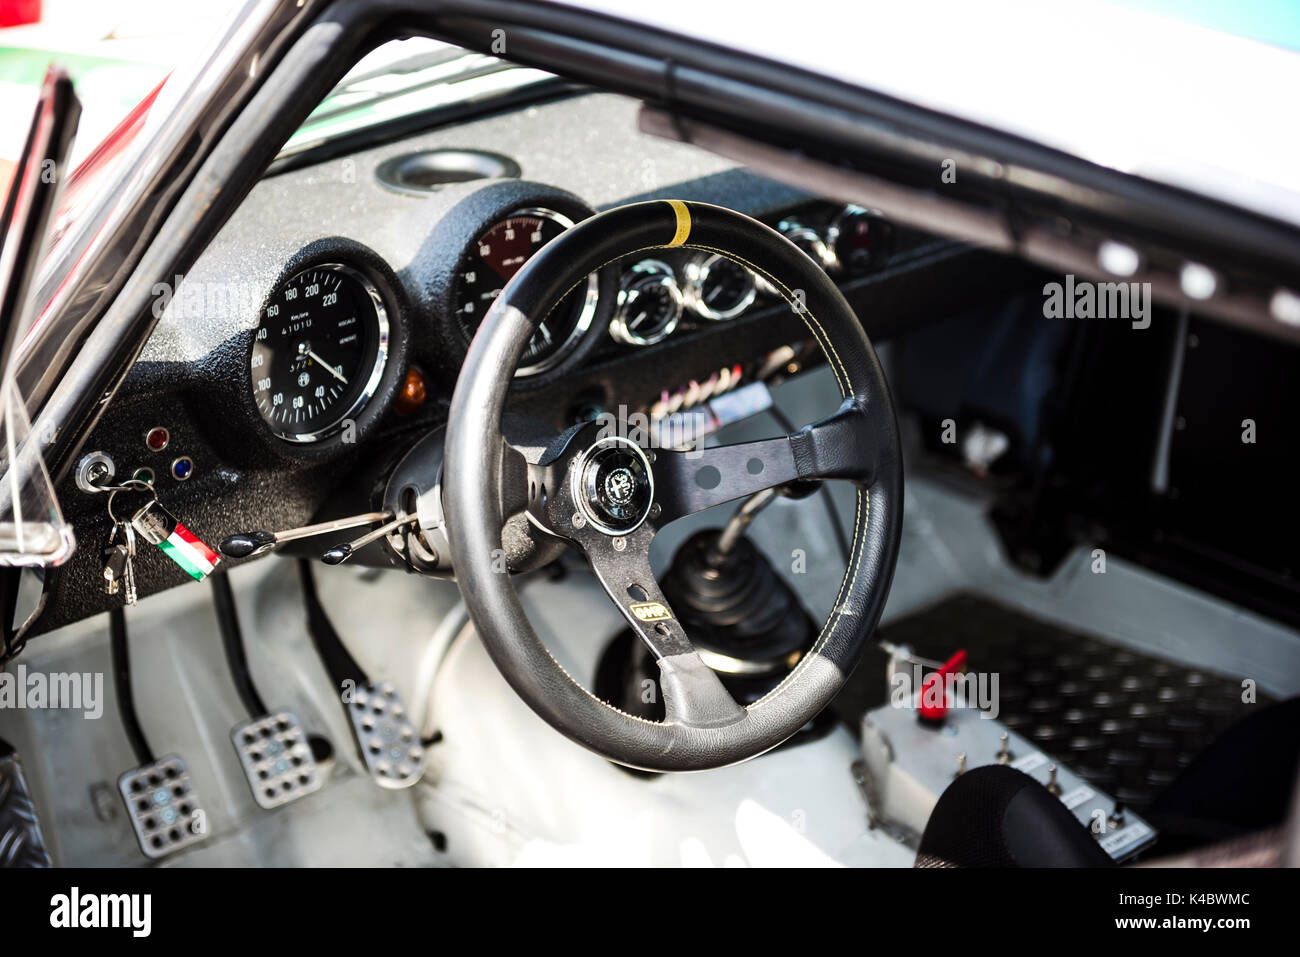 car switches stock photos car switches stock images alamy. Black Bedroom Furniture Sets. Home Design Ideas